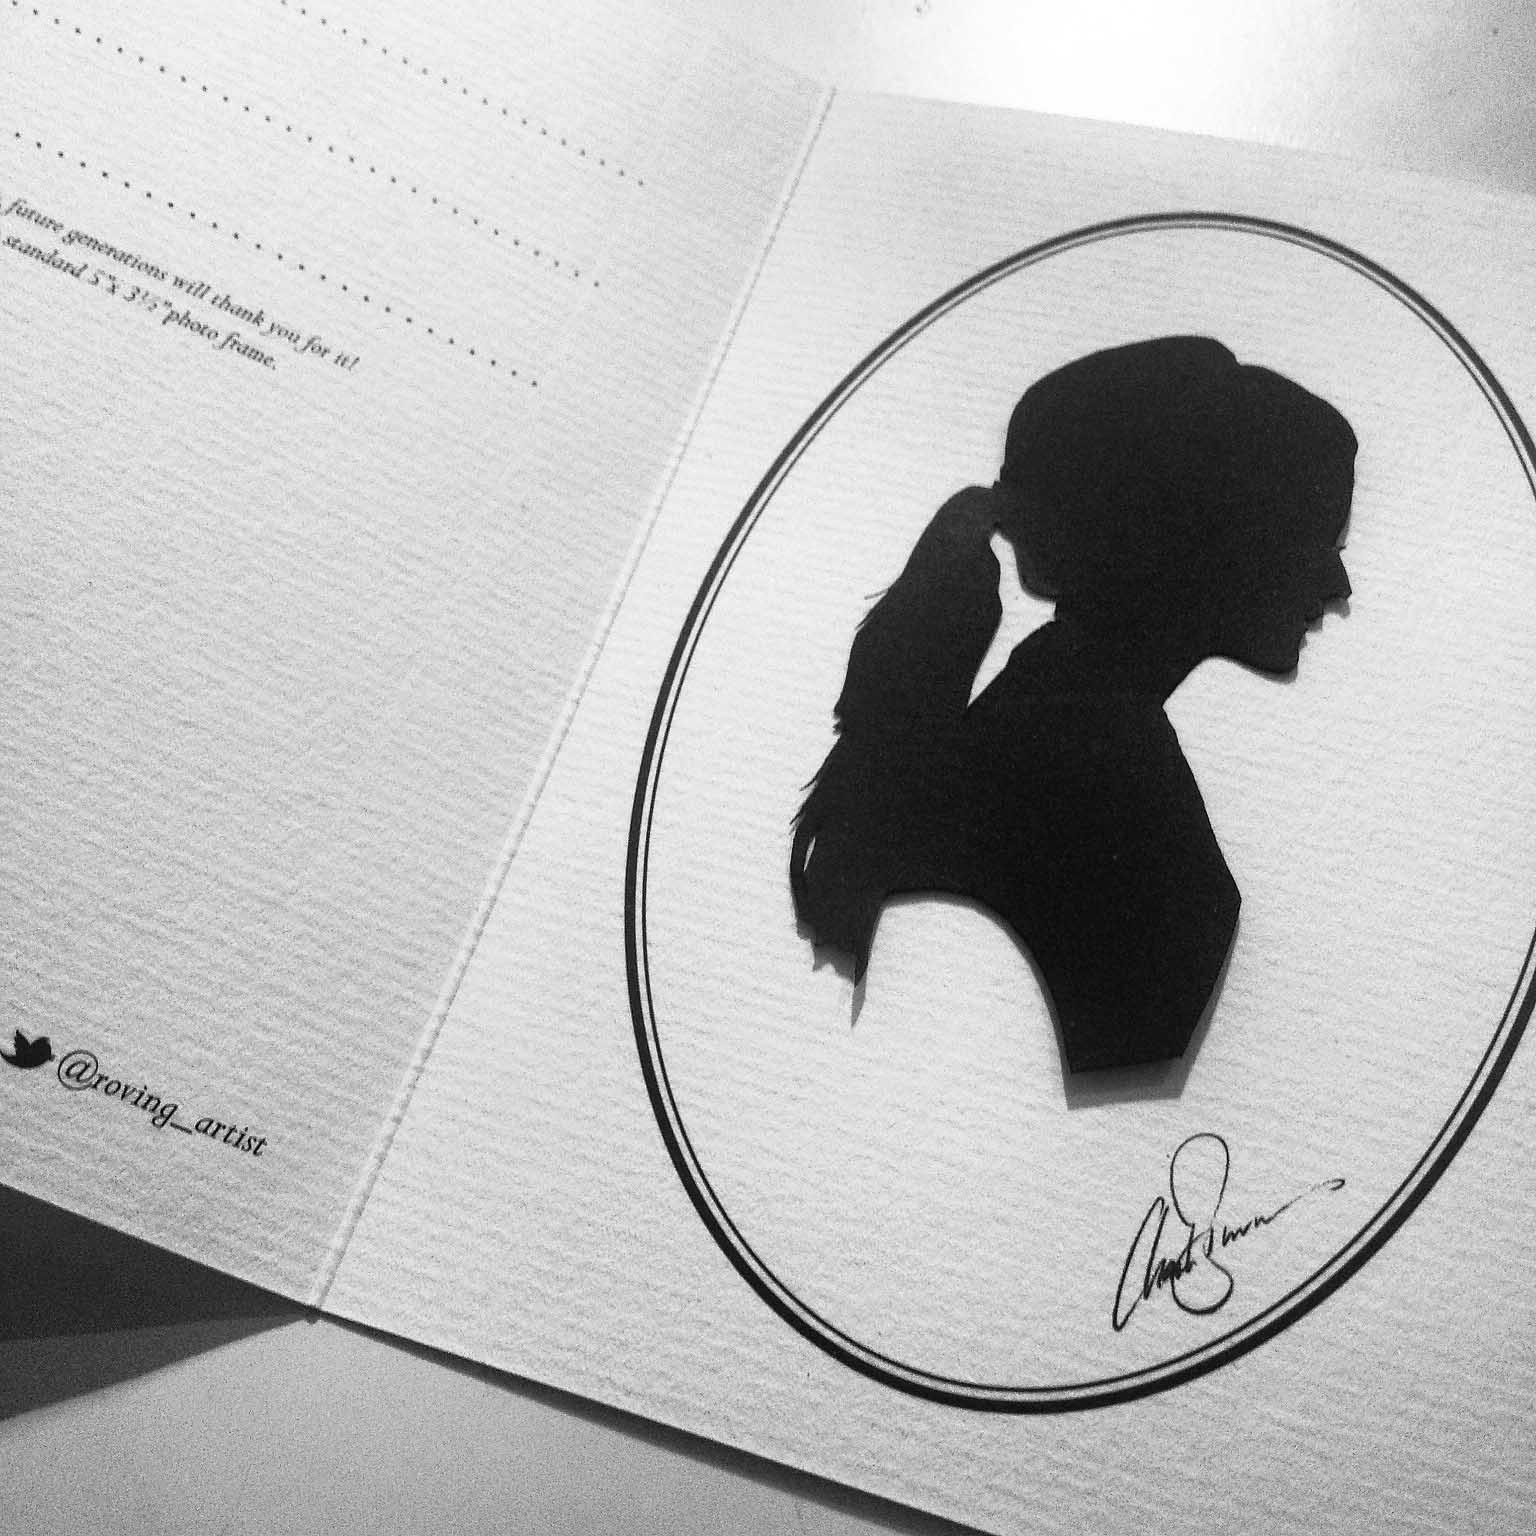 Image of Freya Rose silhouette as created by the Roving artist at a Suzanne Neville bridal event in London